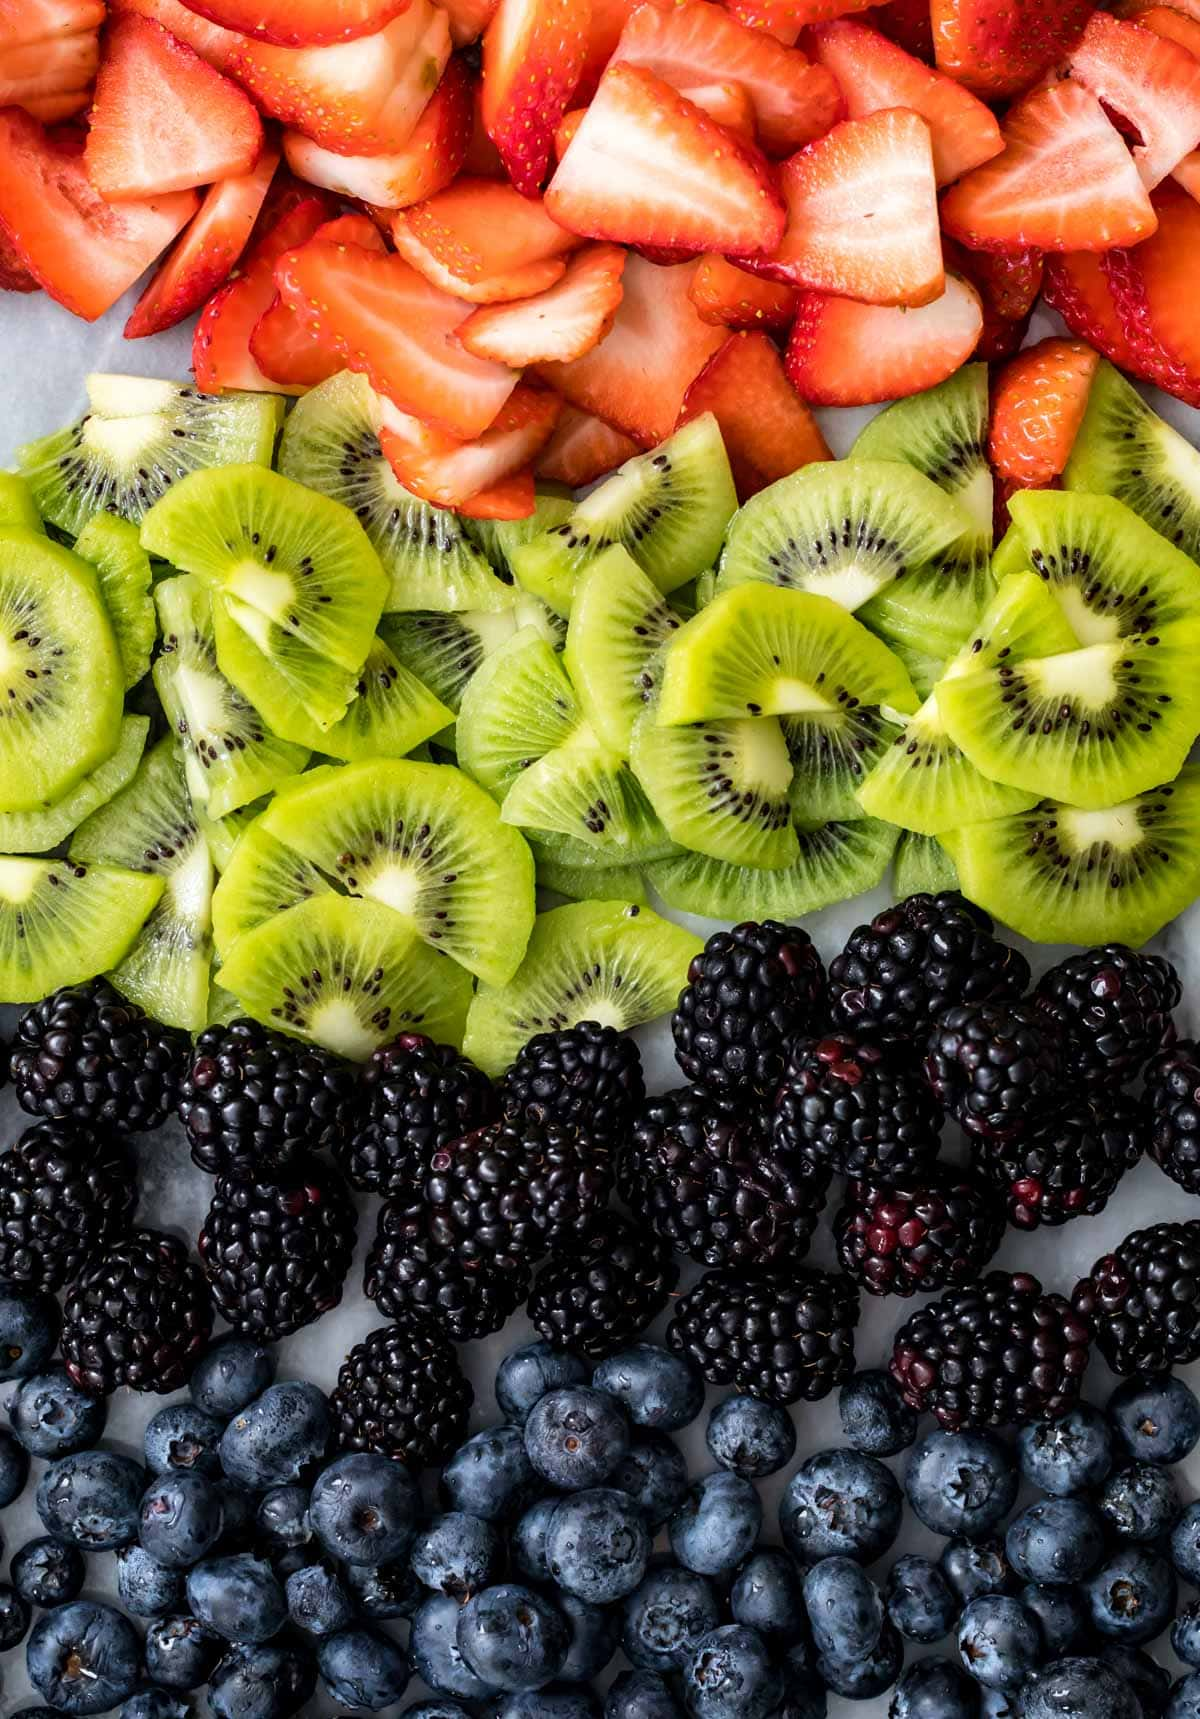 Array of fruit: strawberry and kiwi slices, blackberries and blueberries